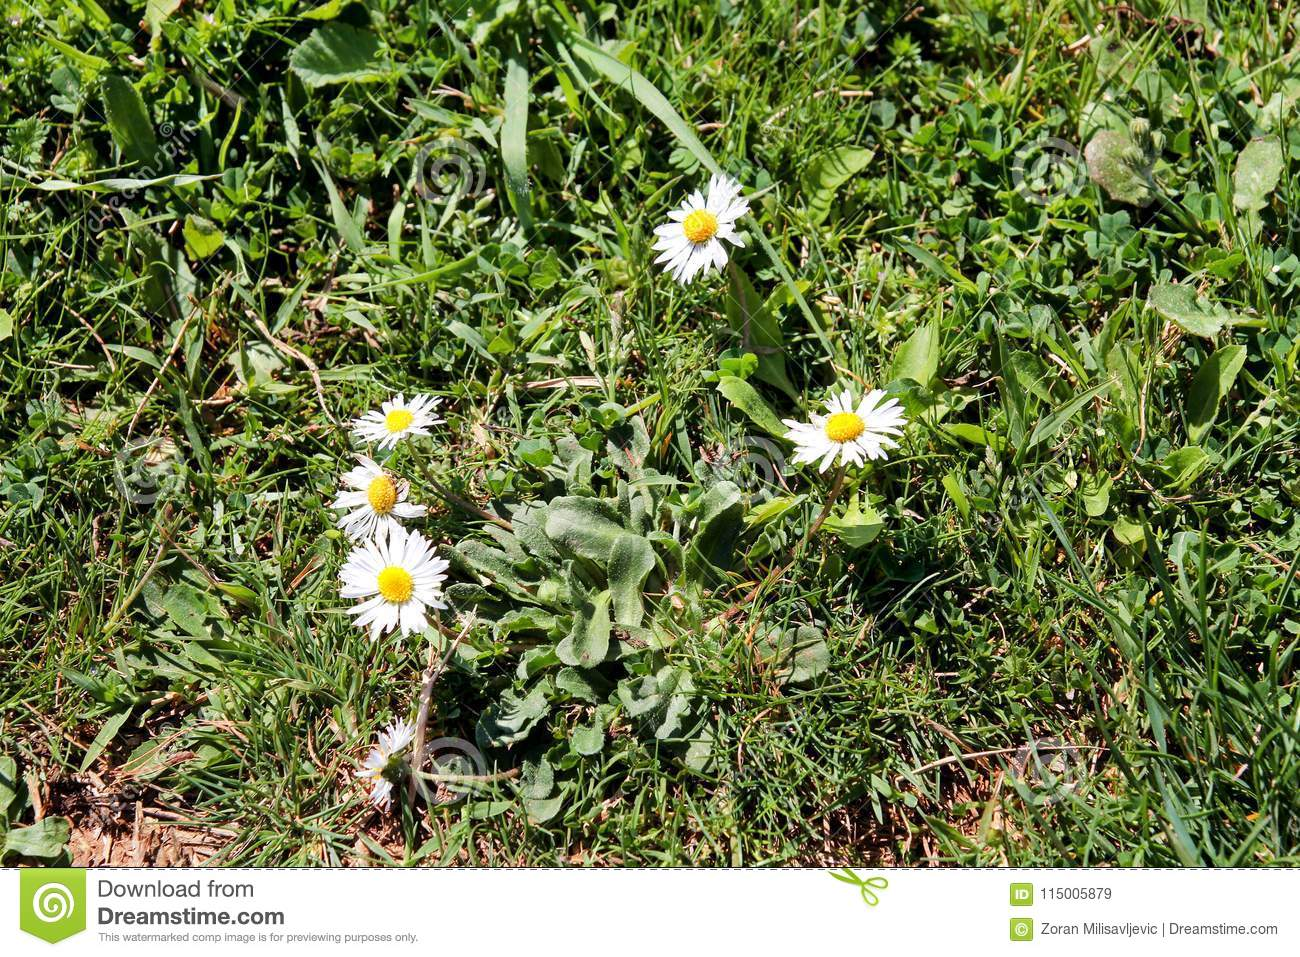 Daisy Beautiful White Field Of Daisies Flowers In Garden Spring